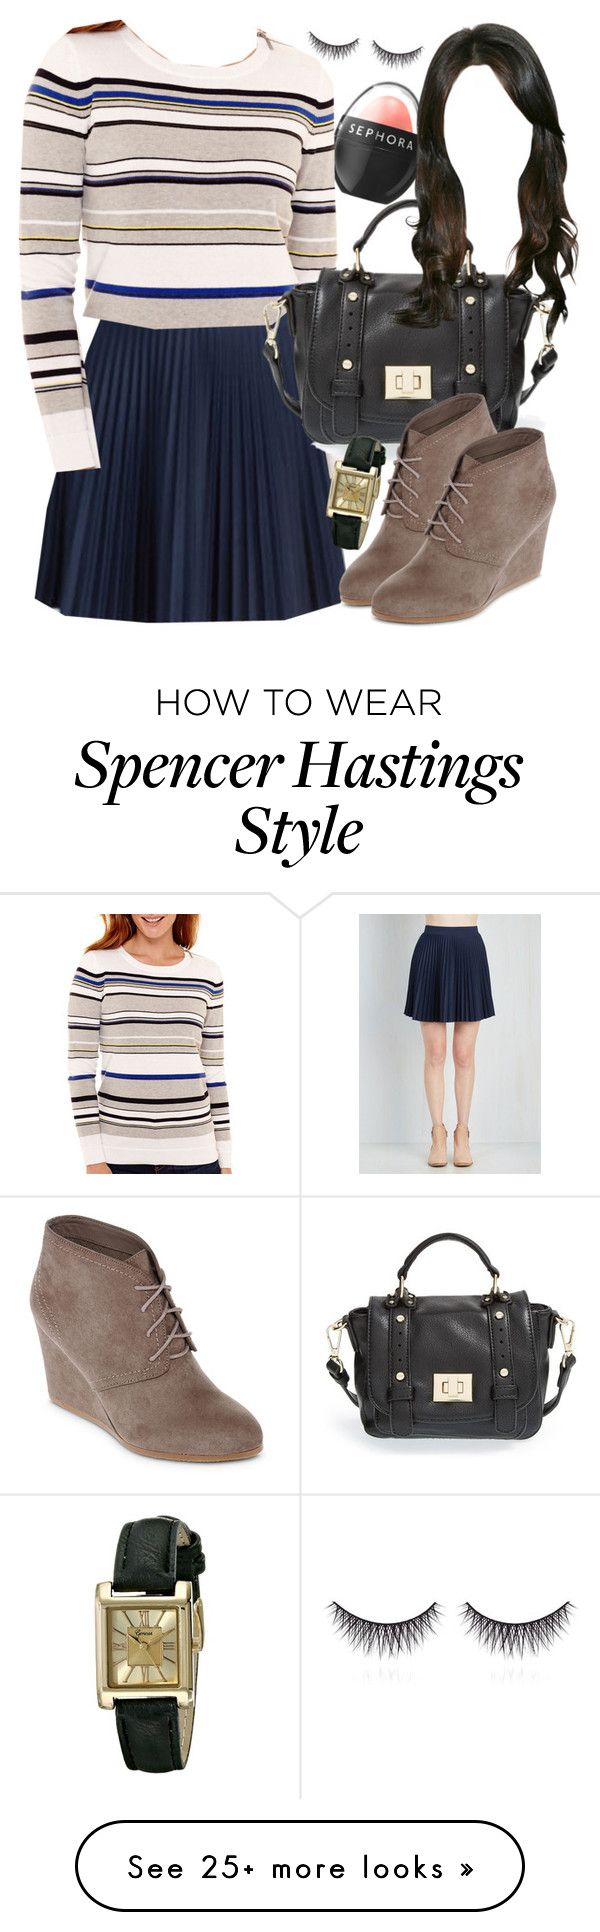 """Spencer Hastings inspired outfit with requested skirt"" by liarsstyle on Polyvore featuring moda, Sephora Collection, Liz Claiborne, Sole Society, Arizona, Geneva, shu uemura, college, mid e museum"